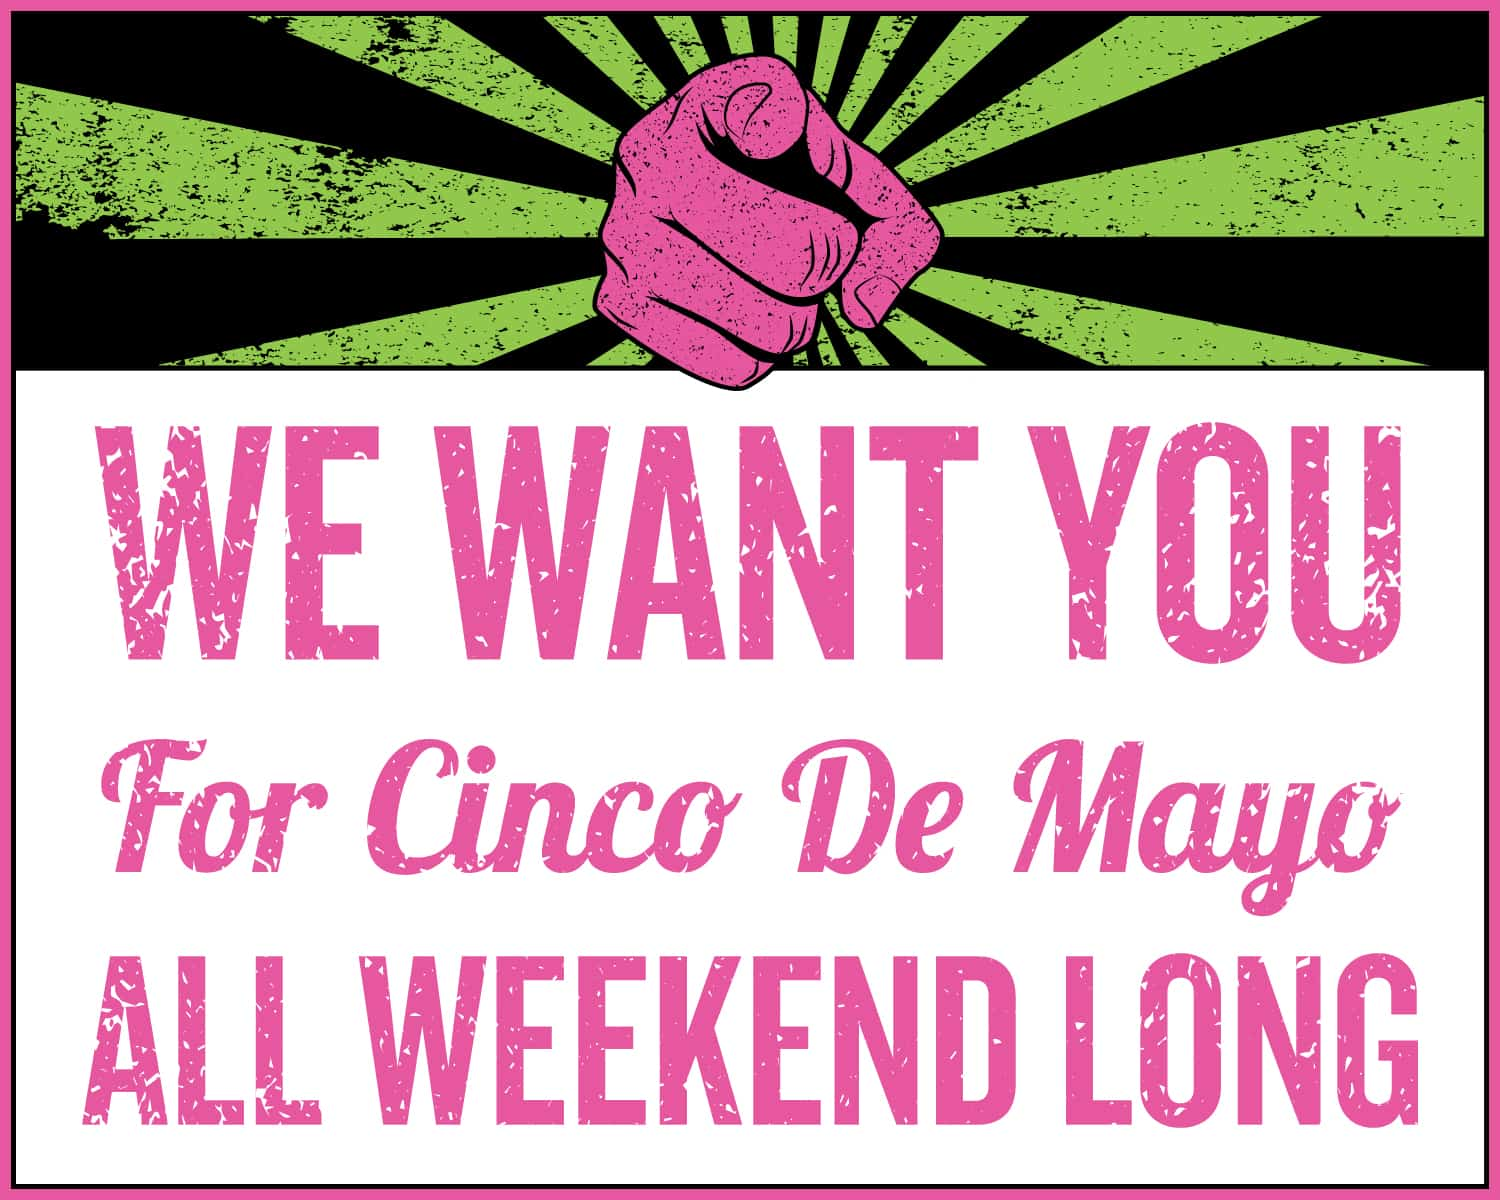 cinco-we-want-you-shout-poster